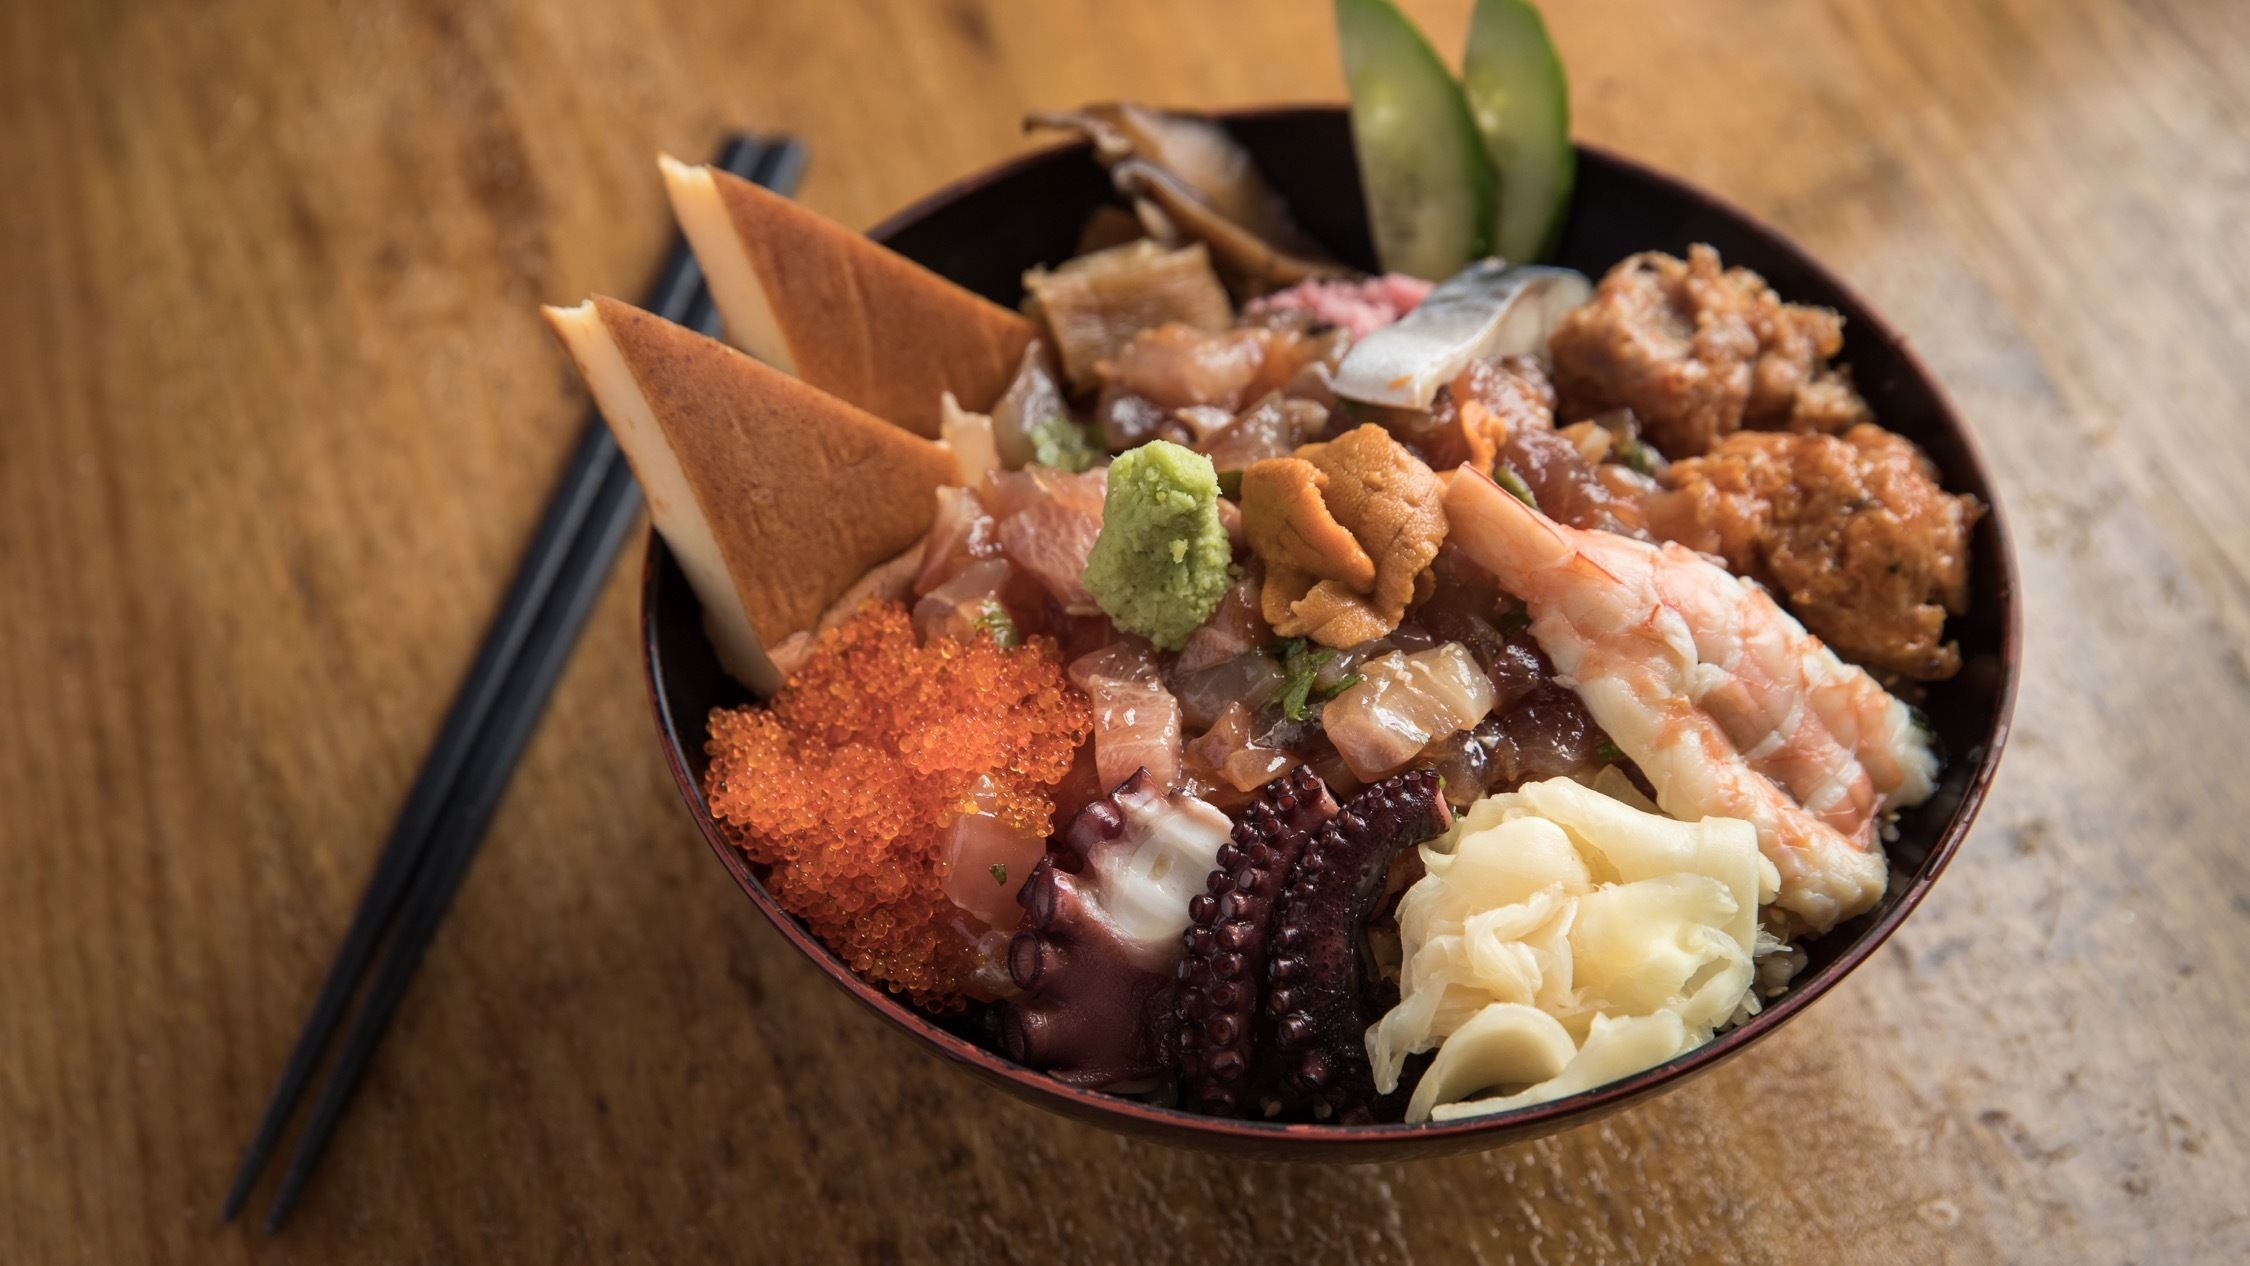 Seafood bowl at Hana Ju-Rin